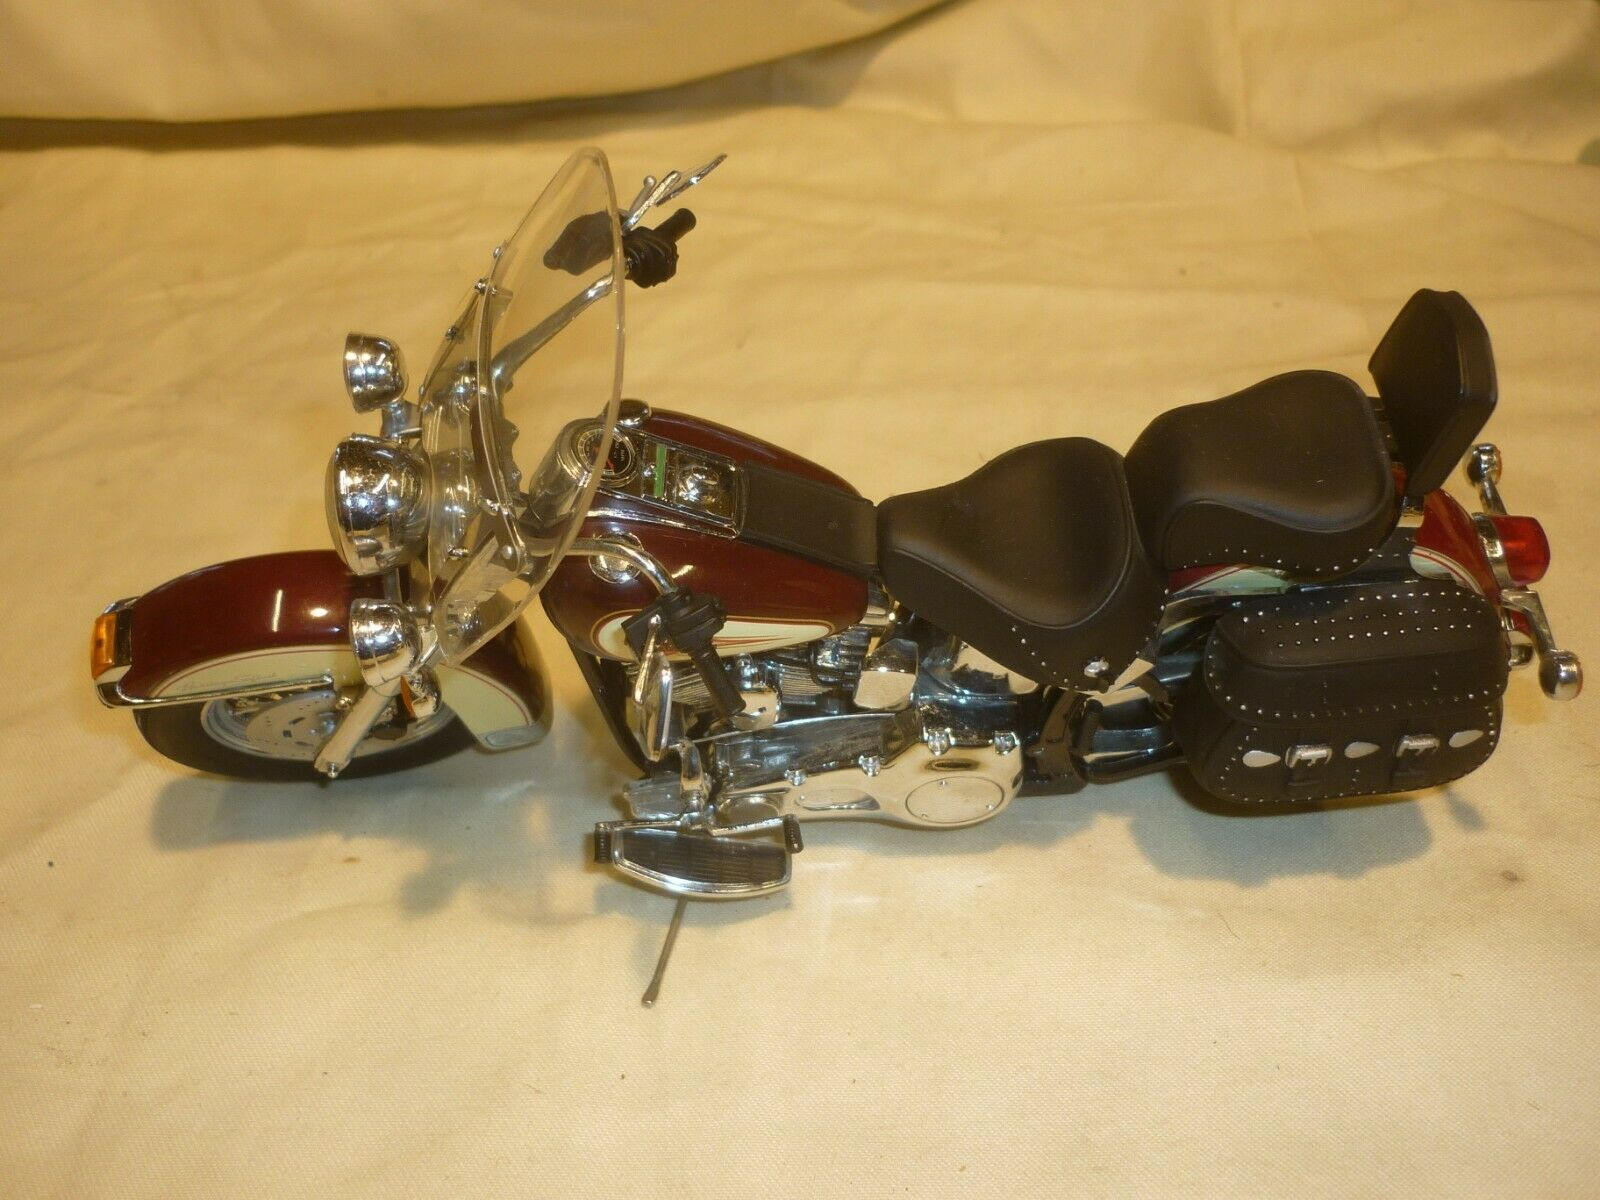 A Franklin mint of a scale model of a 1989 Harley Davidson Heritage Softail